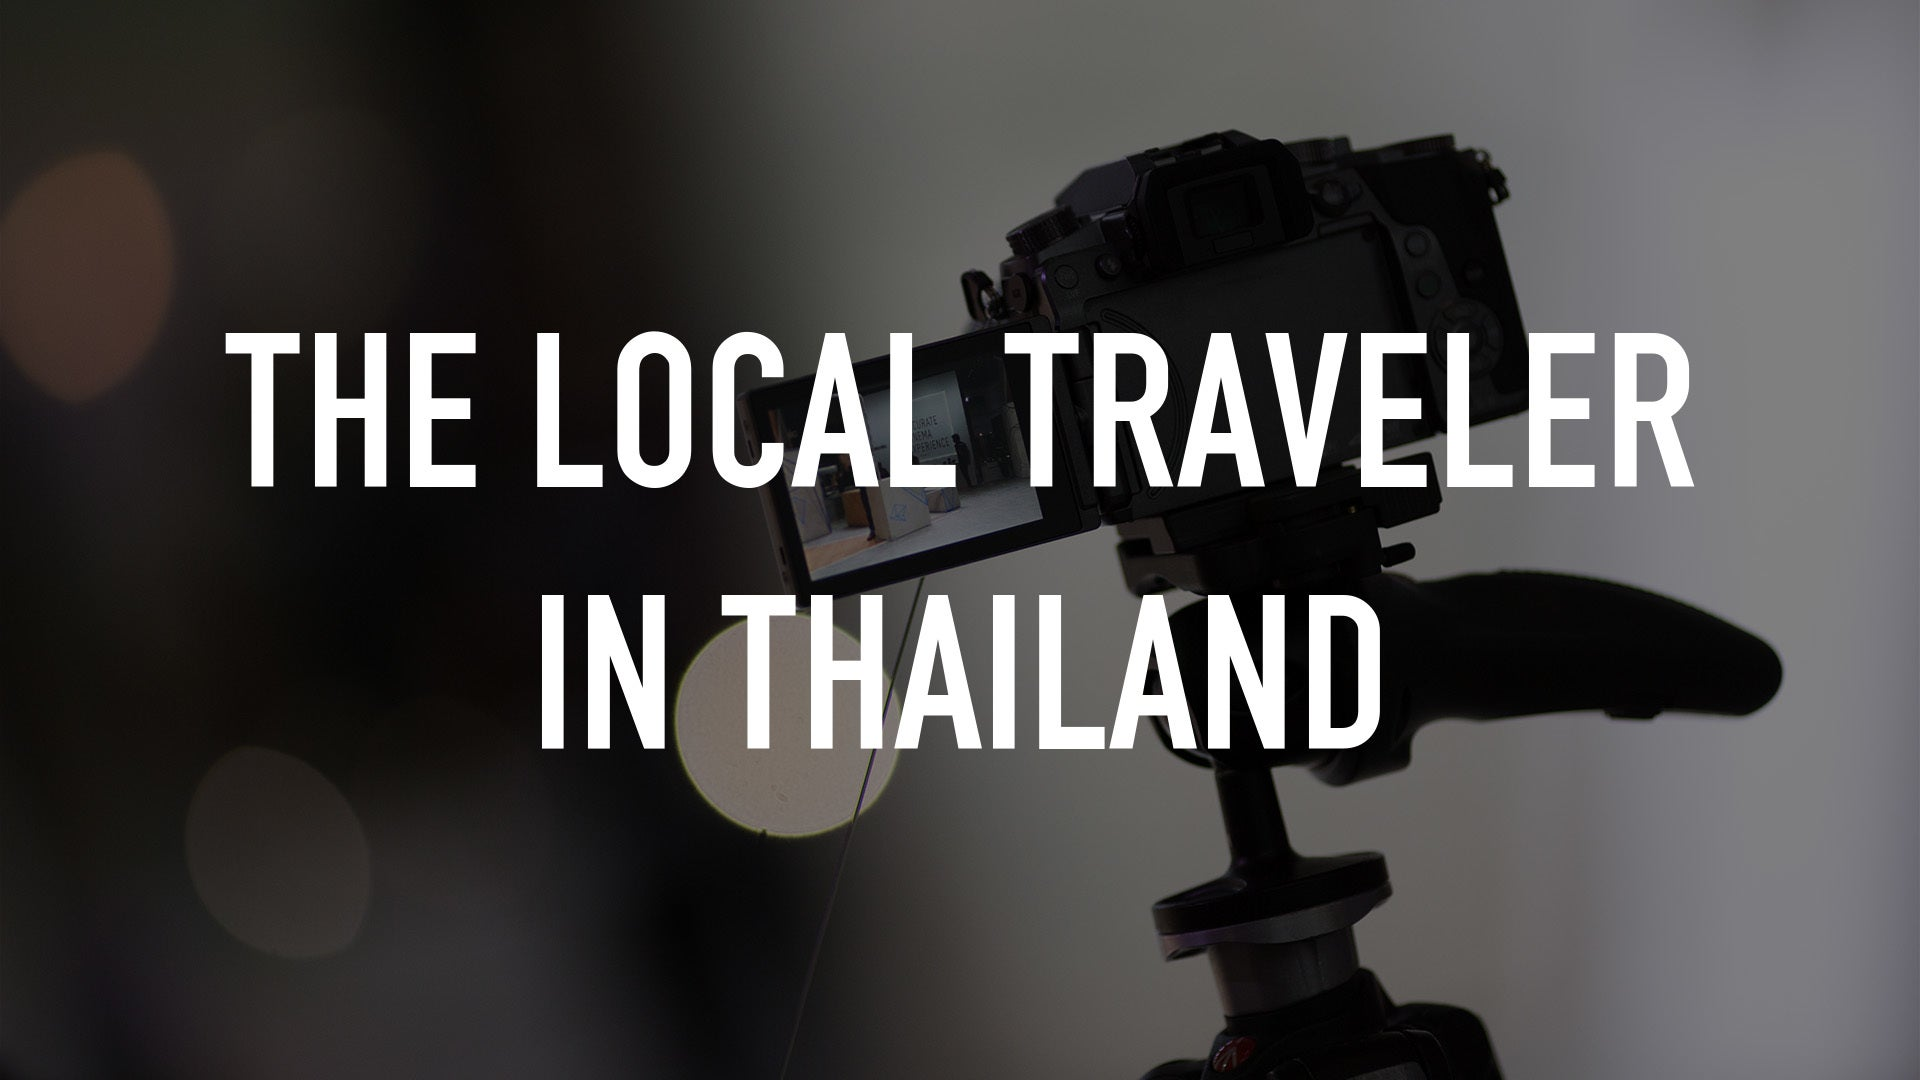 The Local Traveler in Thailand